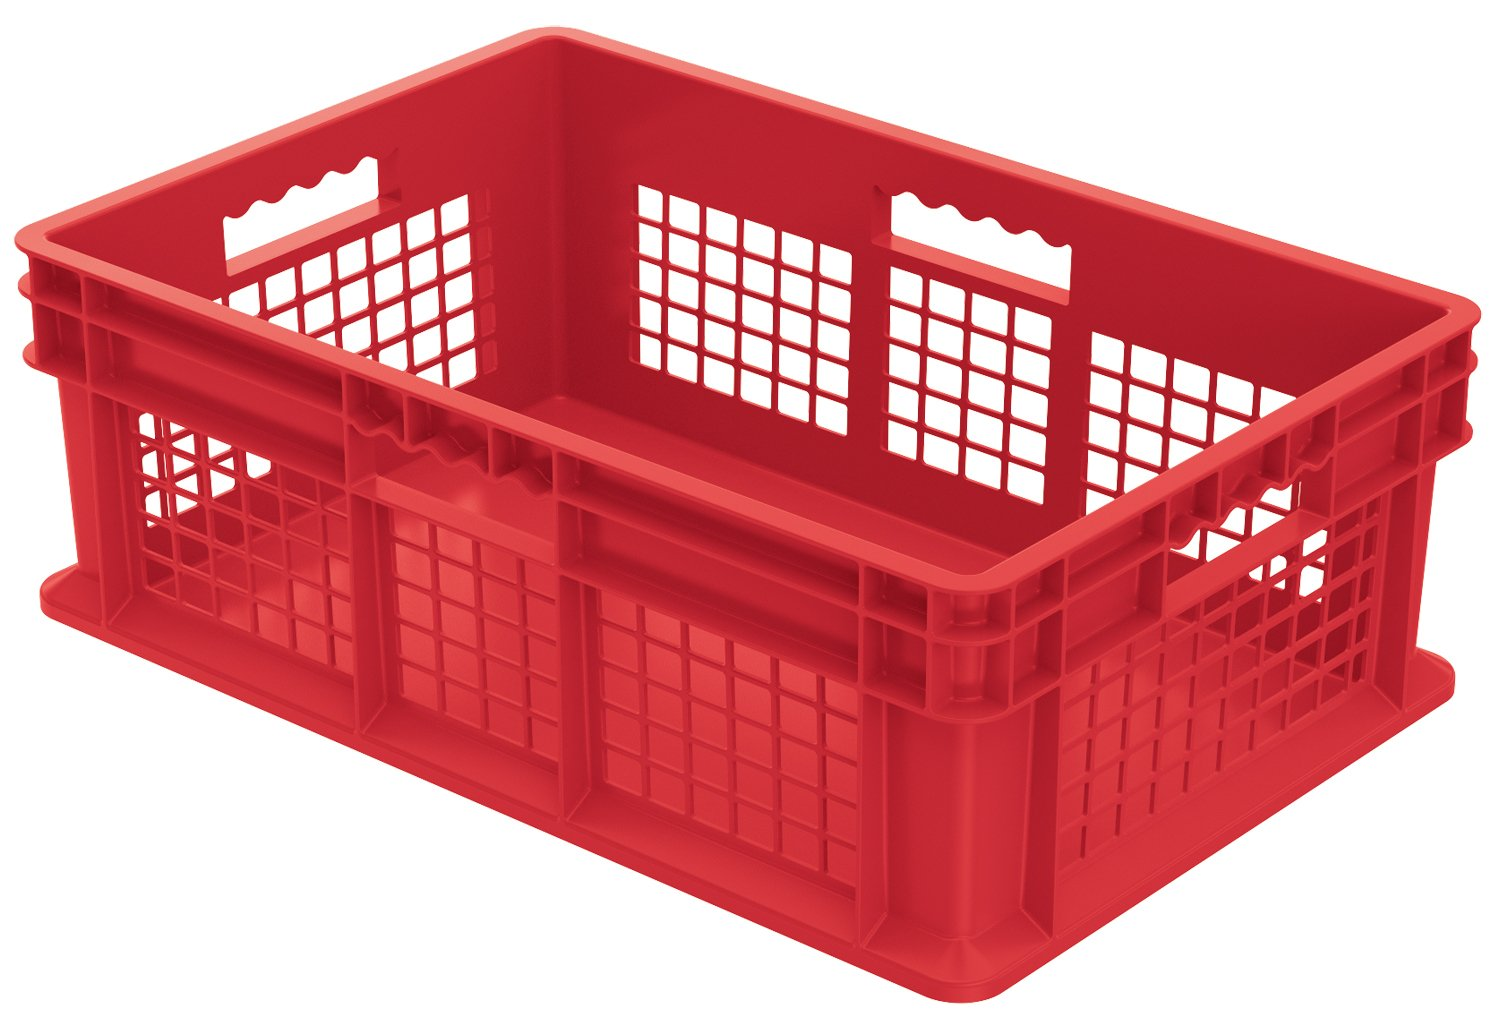 Akro-Mils 37678 24-Inch by 16-Inch by 8-Inch Straight Wall Container Plastic Tote with Mesh Sides and Solid Base, Case of 4, Red